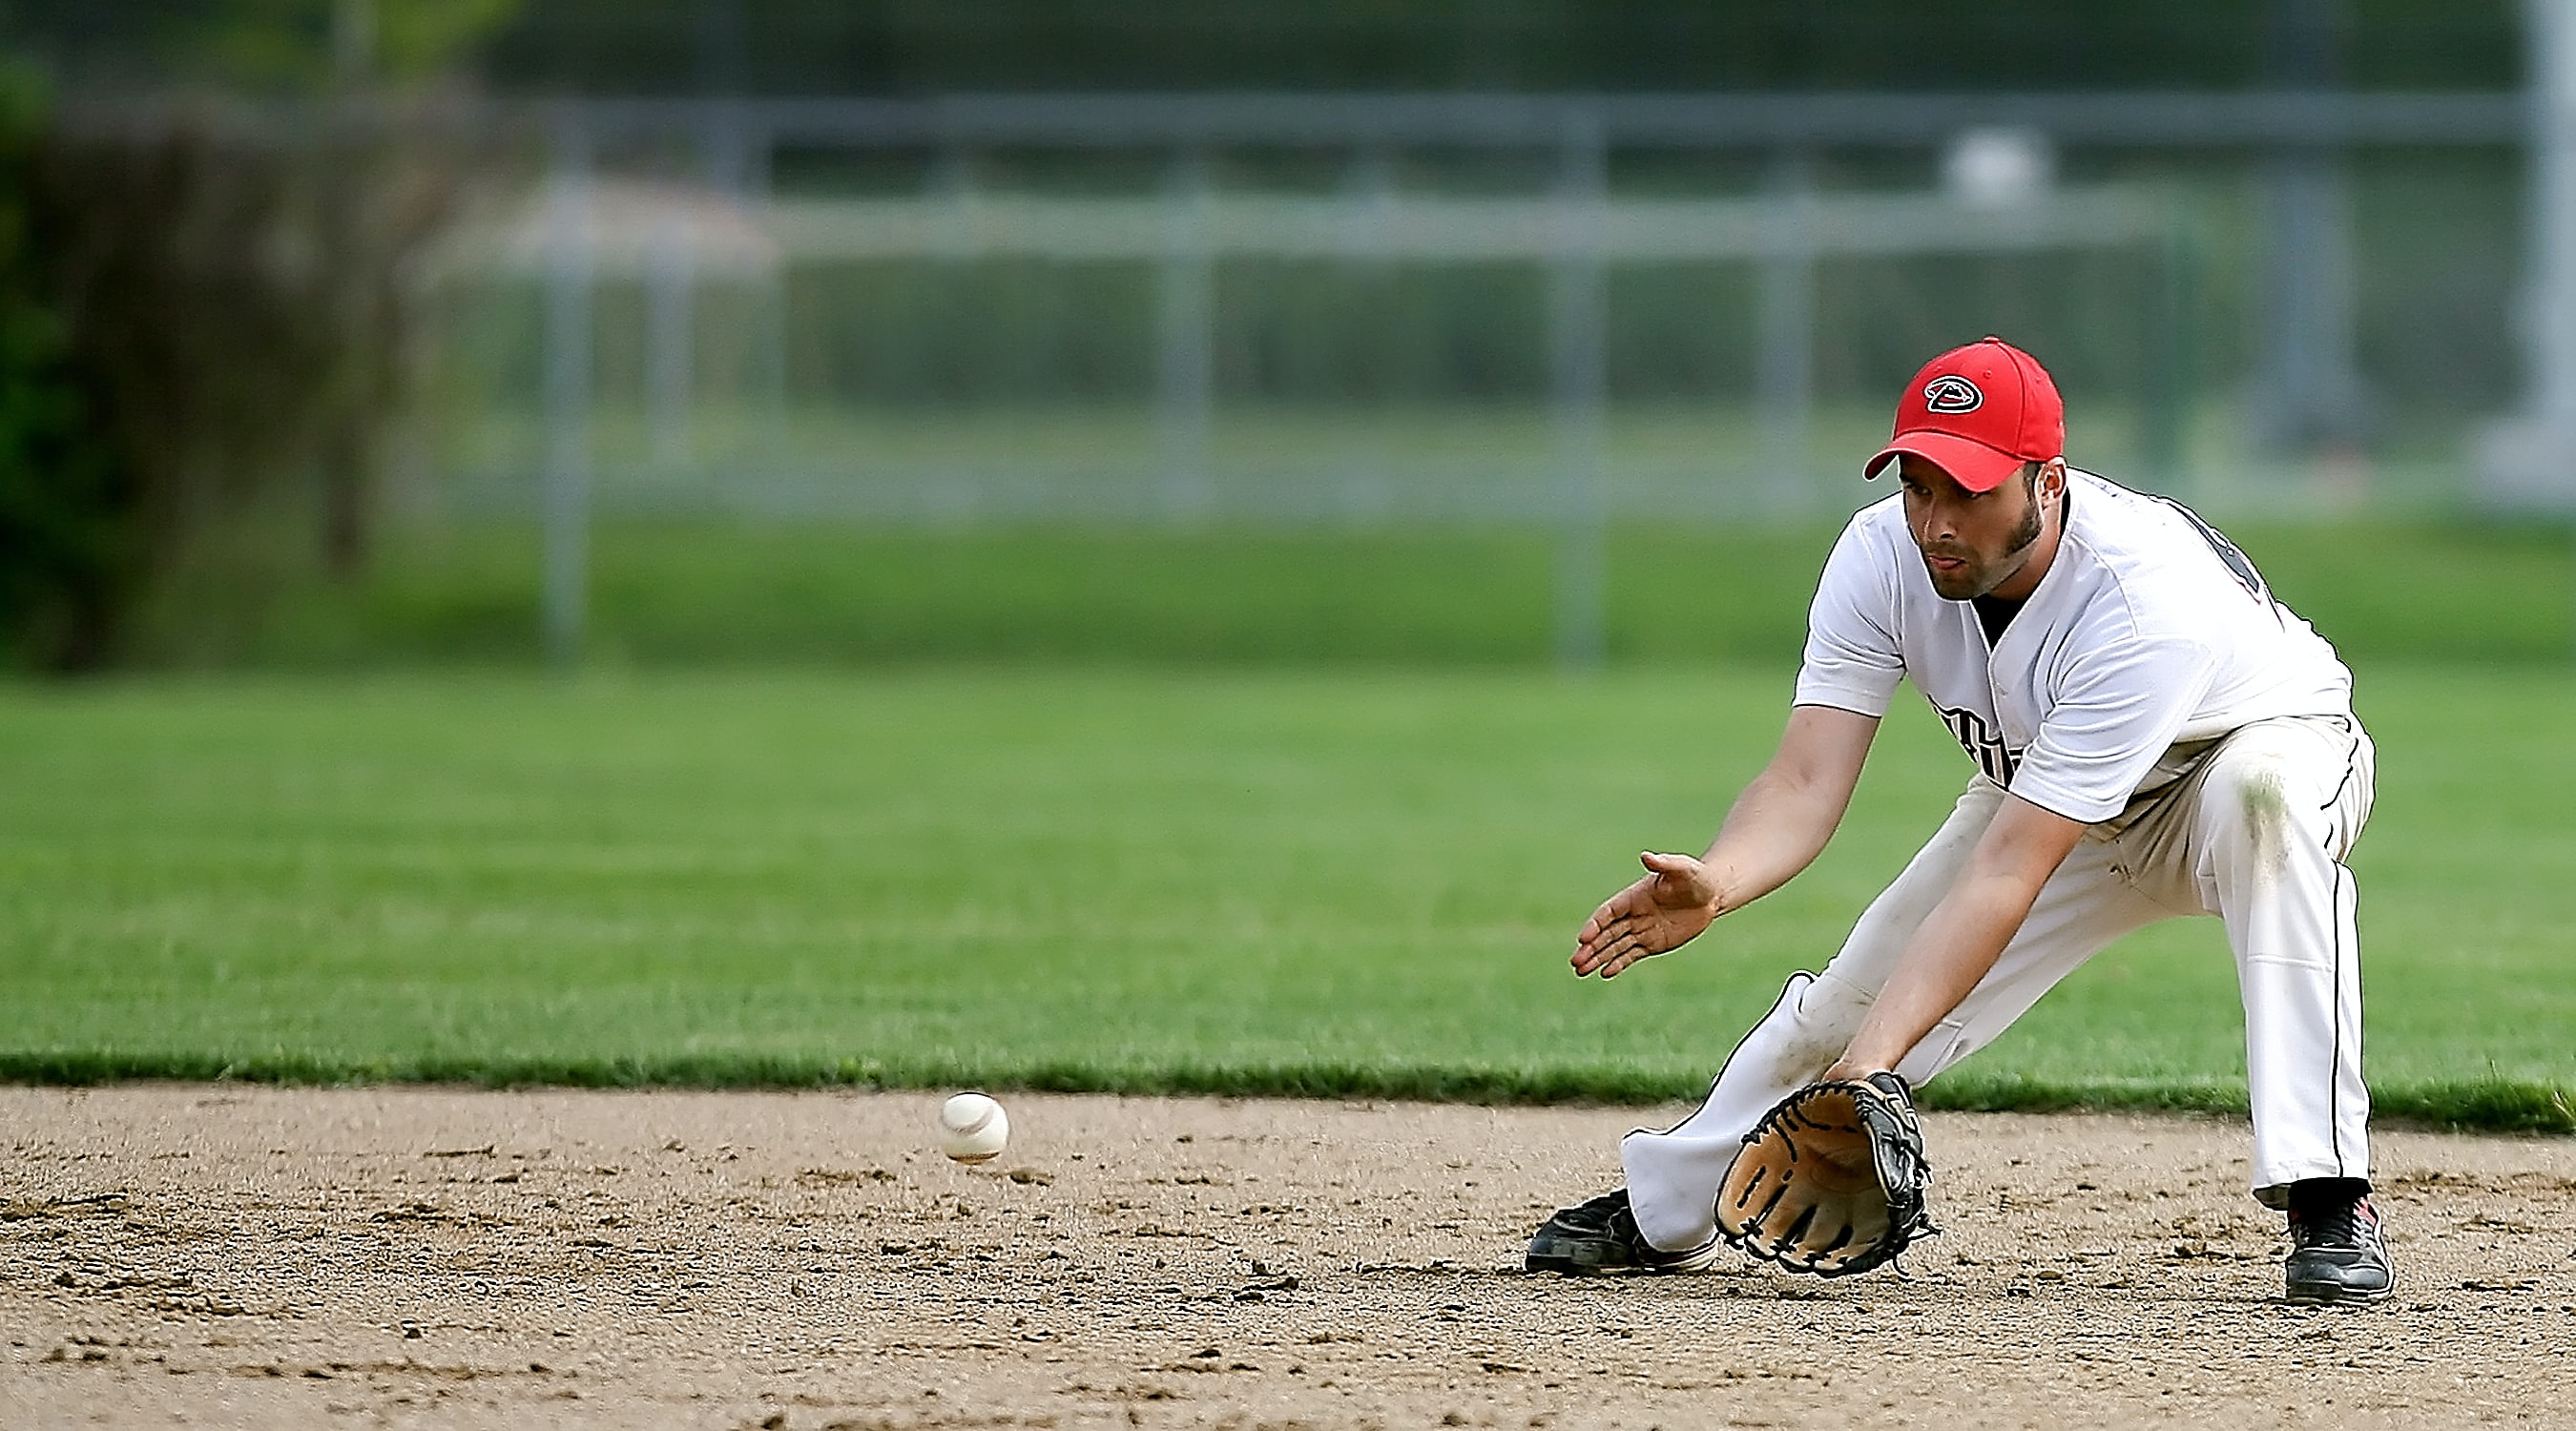 man playing baseball